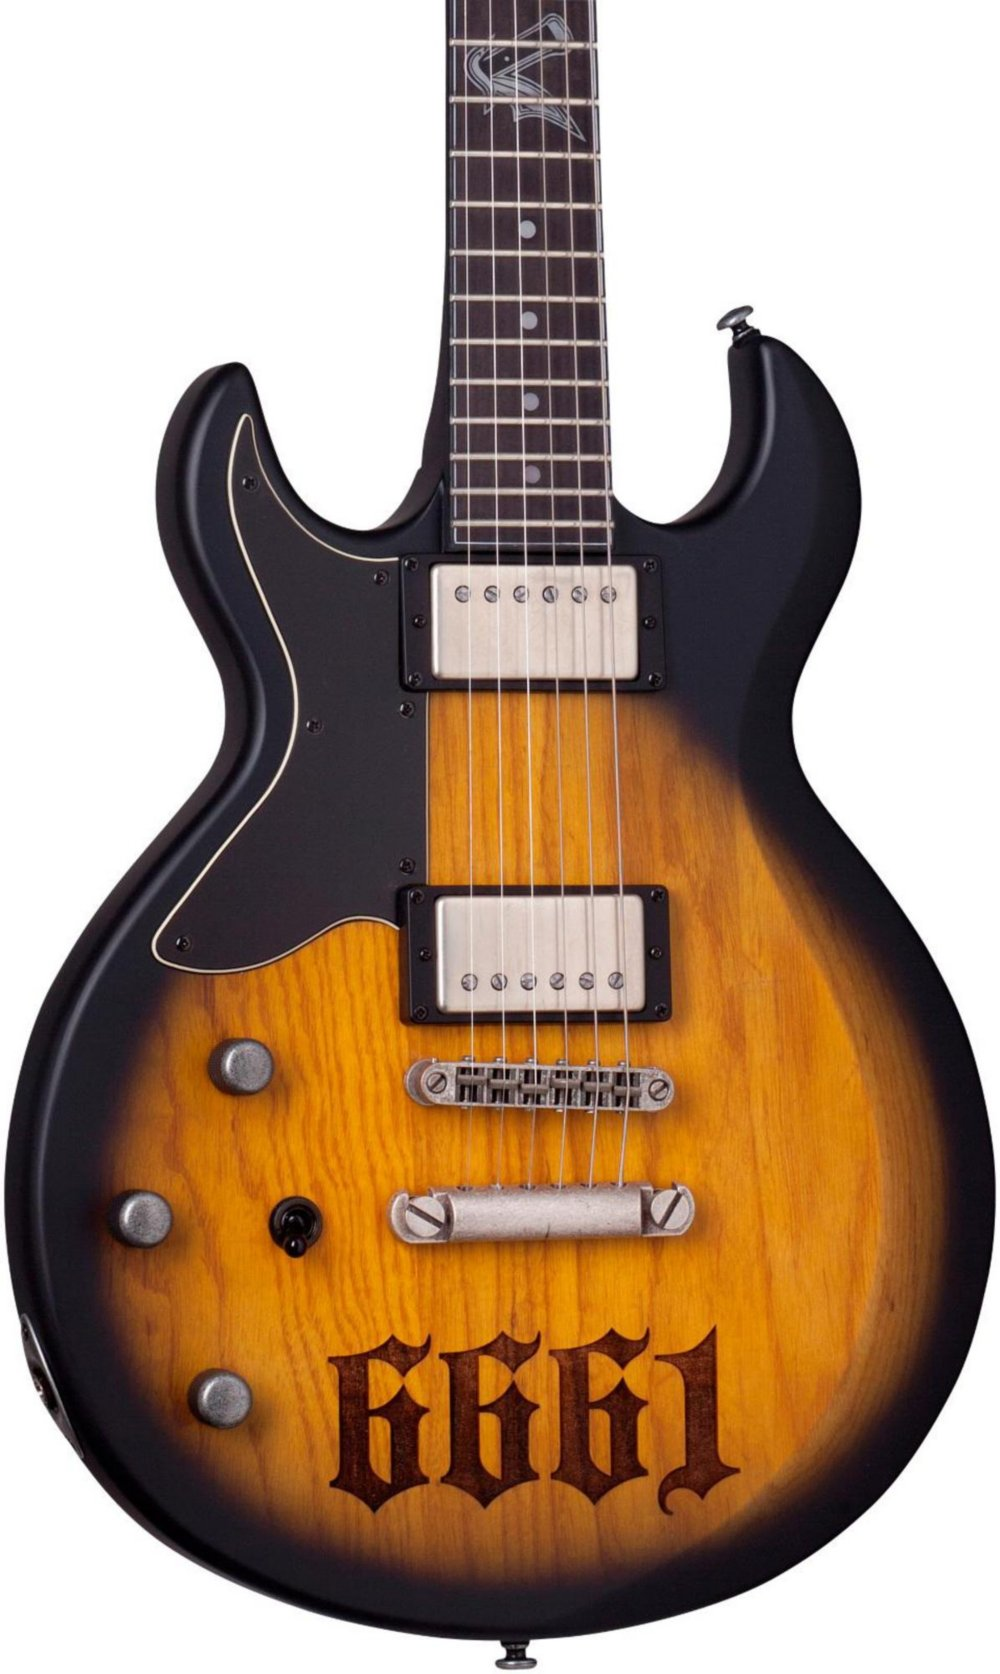 Cheap Schecter Guitar Research Zacky Vengeance S-1 6661 Left-Handed Electric Guitar Aged Natural Satin Black Burst Black Friday & Cyber Monday 2019